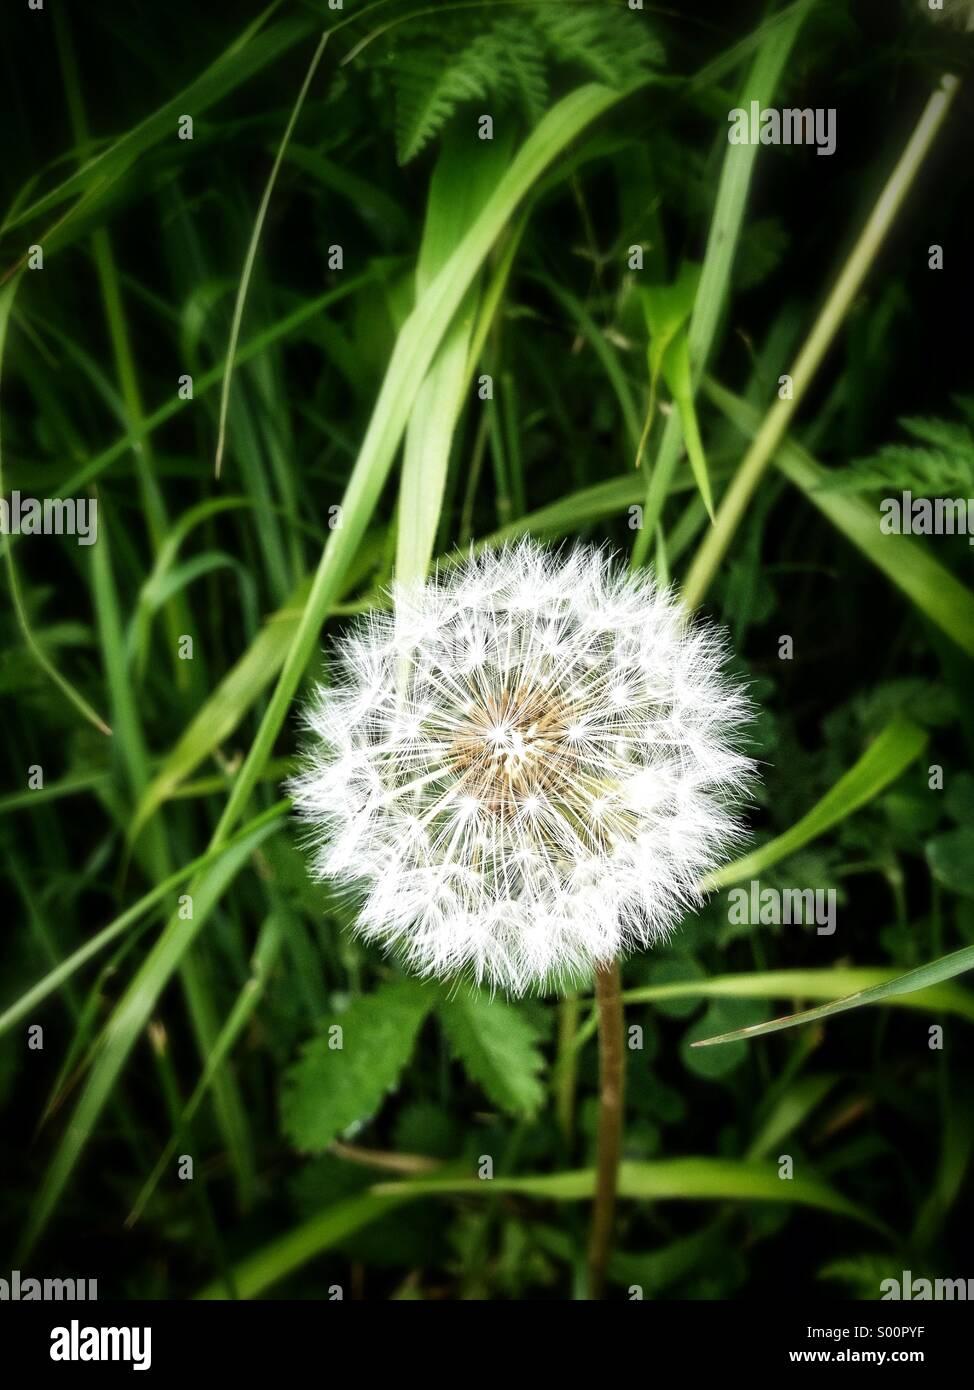 Dandelion surrounded by grass - Stock Image